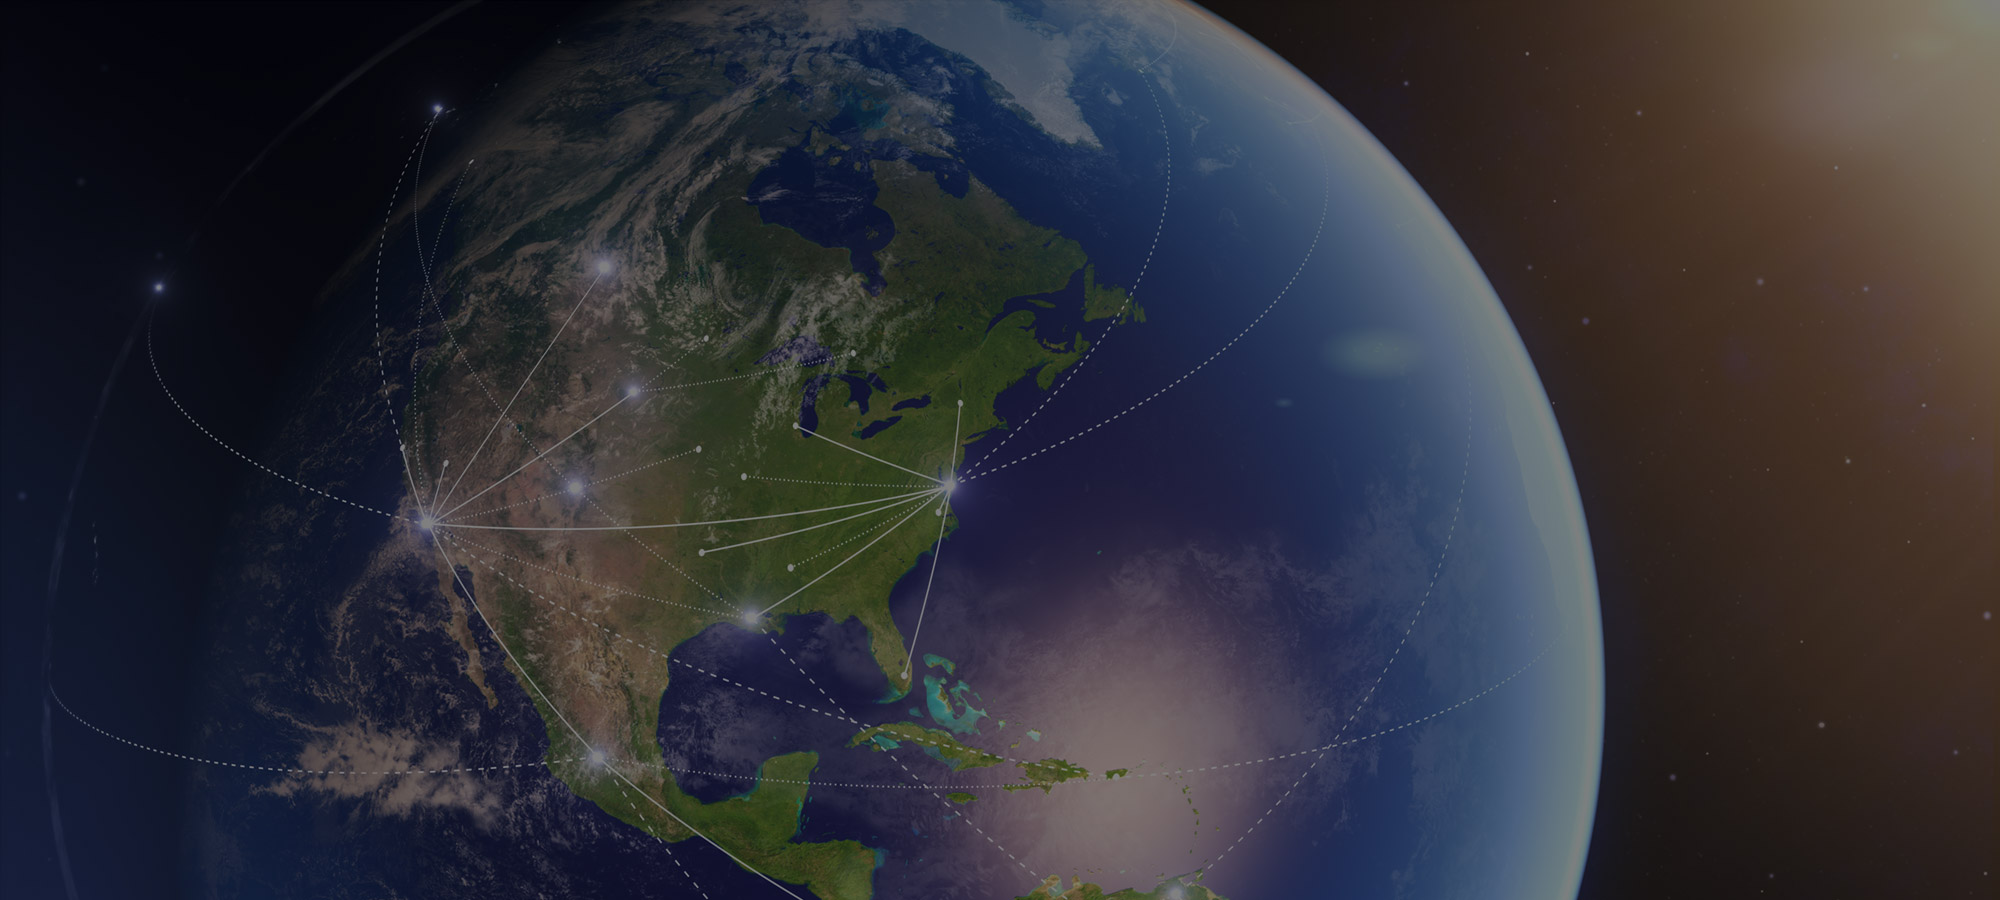 Outer space view of North America